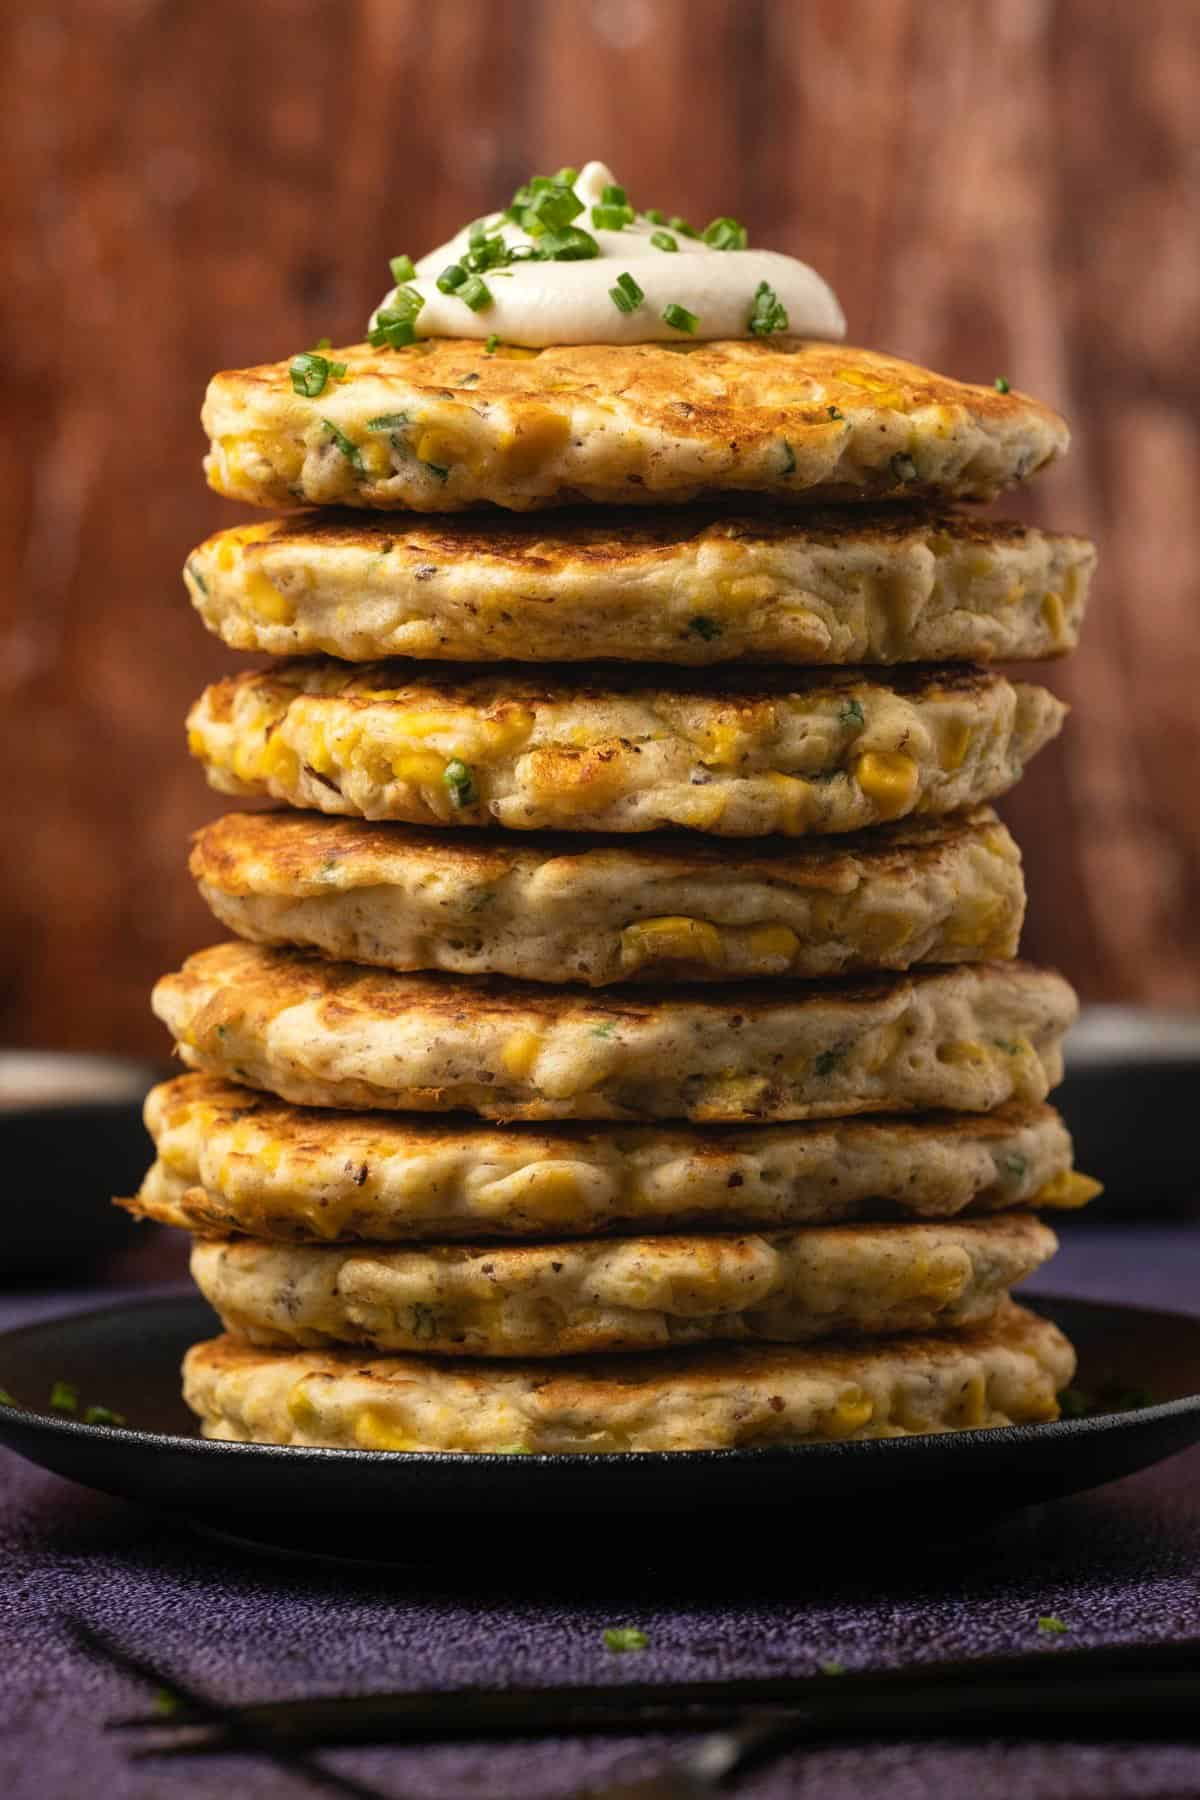 Stack of vegan corn fritters topped with sour cream and chives on a black plate.